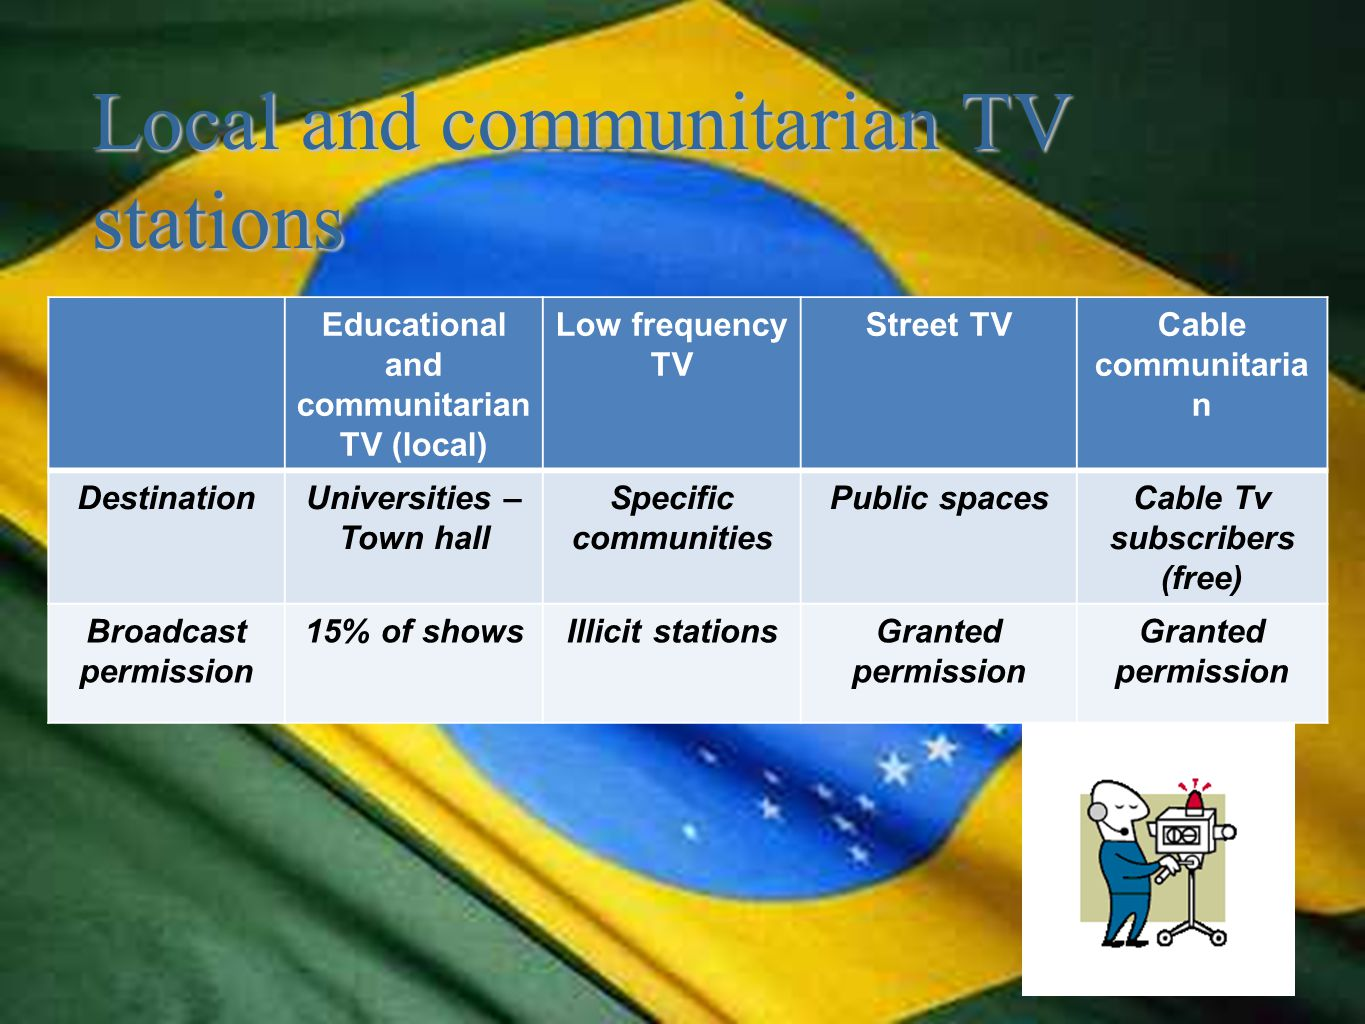 Local and communitarian TV stations Educational and communitarian TV (local) Low frequency TV Street TVCable communitaria n DestinationUniversities – Town hall Specific communities Public spacesCable Tv subscribers (free) Broadcast permission 15% of showsIllicit stationsGranted permission